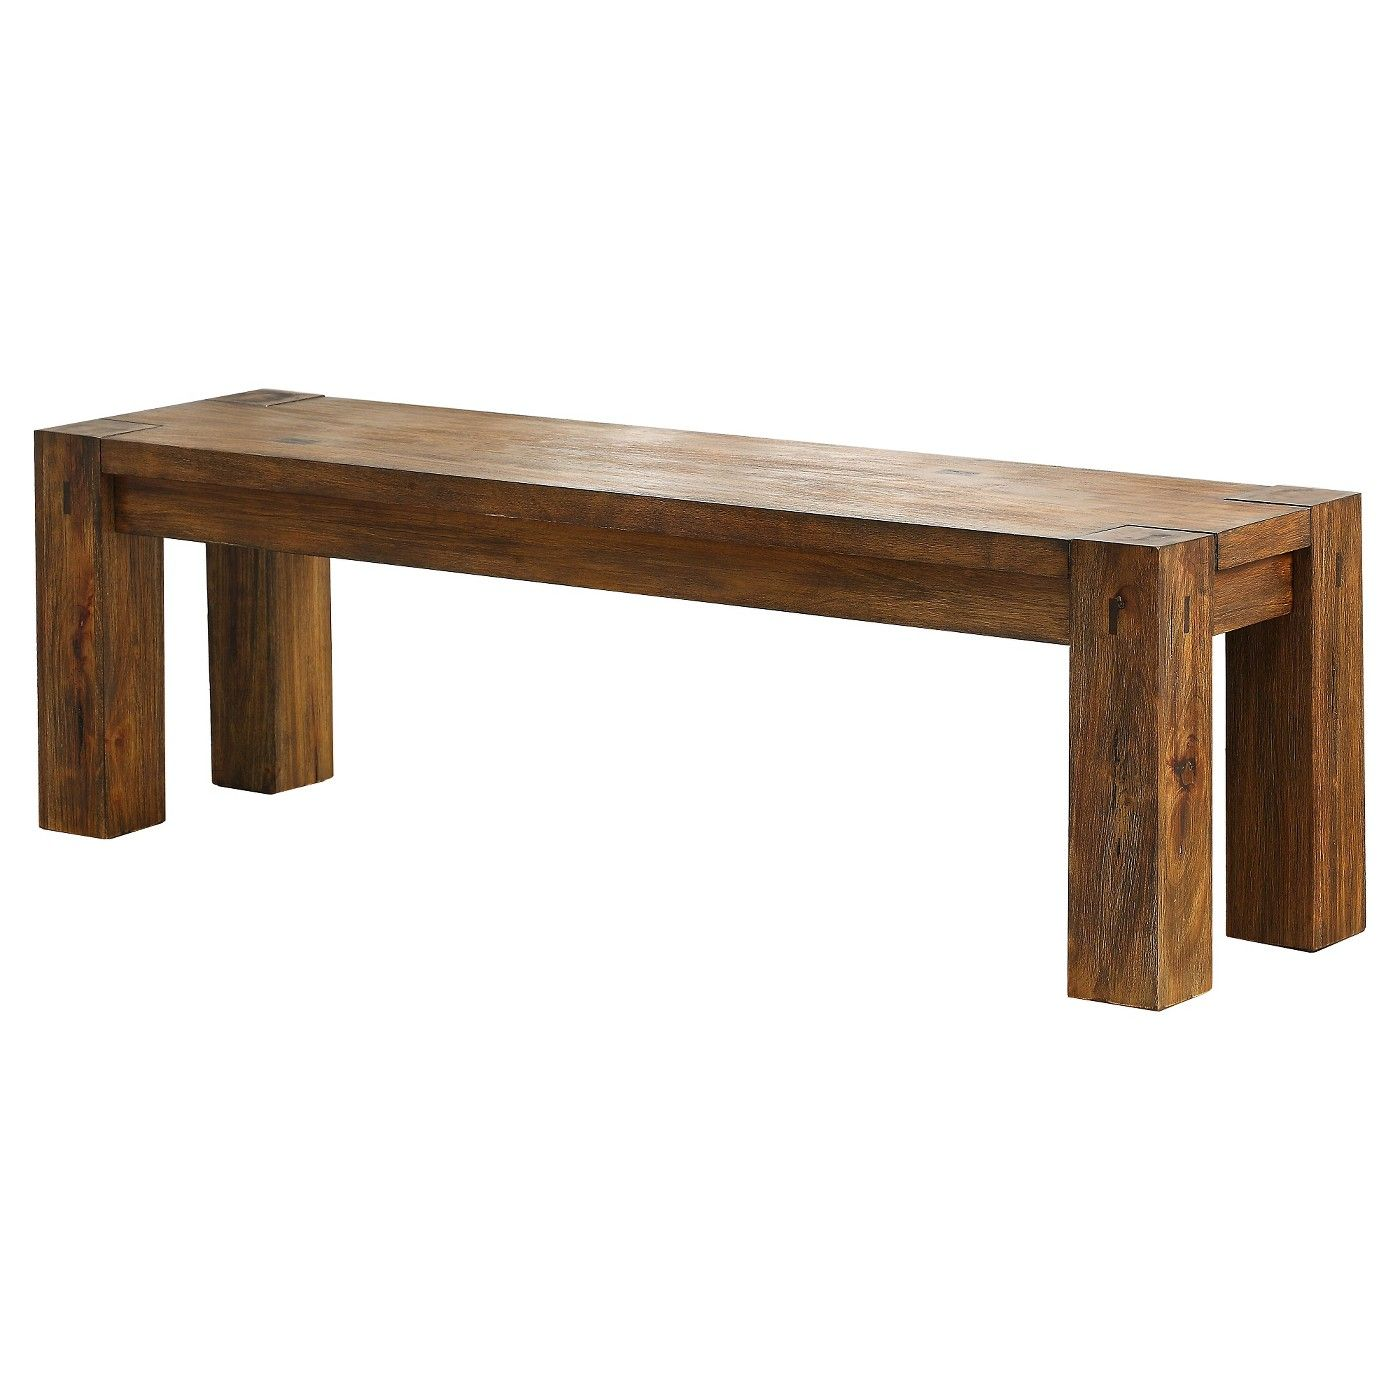 Sun Pine Sturdy Wooden Dining Bench Wood Dark Oak Image 1 Of 2